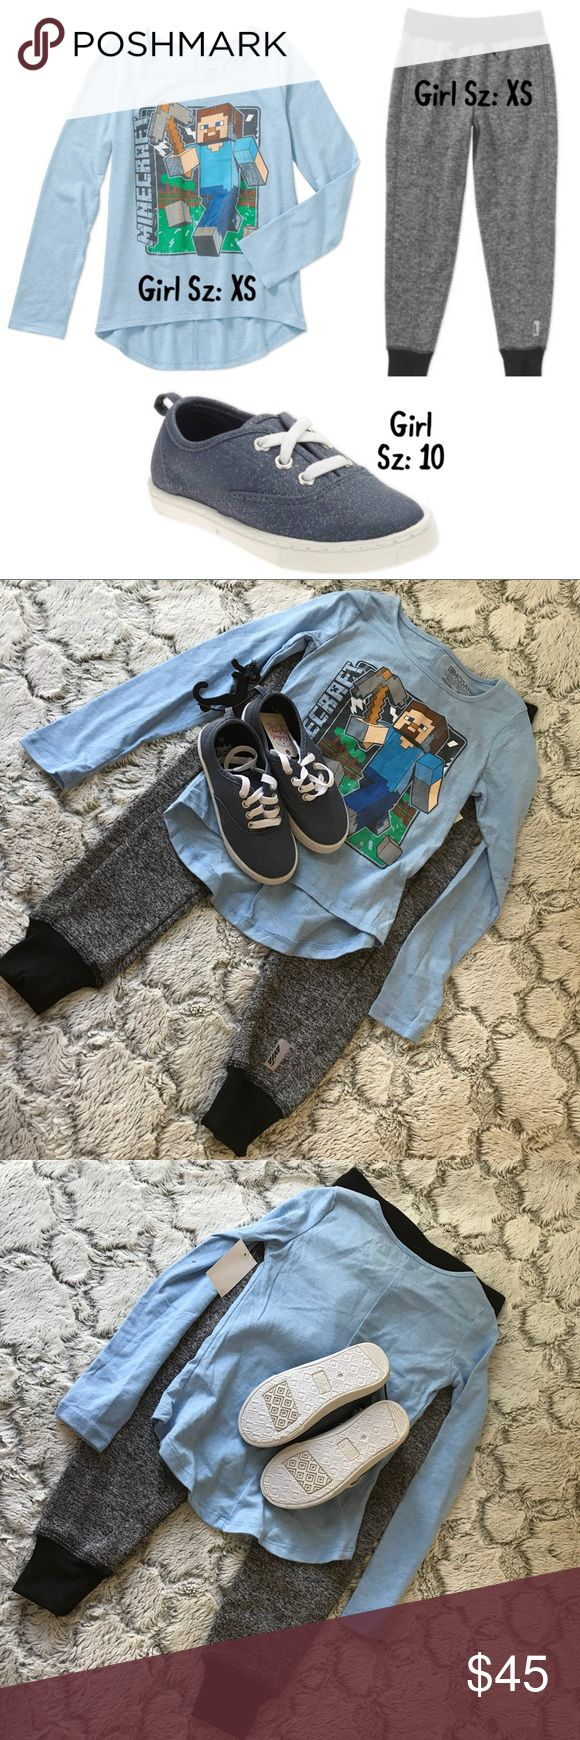 💫NWT🌷SUMMER Girl Mix/Match 3Piece Set🎁 New Girl Mix And Match 3Piece Set includes: 1 Girl Long Sleeve MineCraft Shirt Sz: XS(4-5), 1 Girl Avia Jogger Sz: XS(4-5),  and 1 Girl pair of shoes Sz: 10.   All Brand New w Tags.  Ask me about reduced shipping:) Avia Accessories